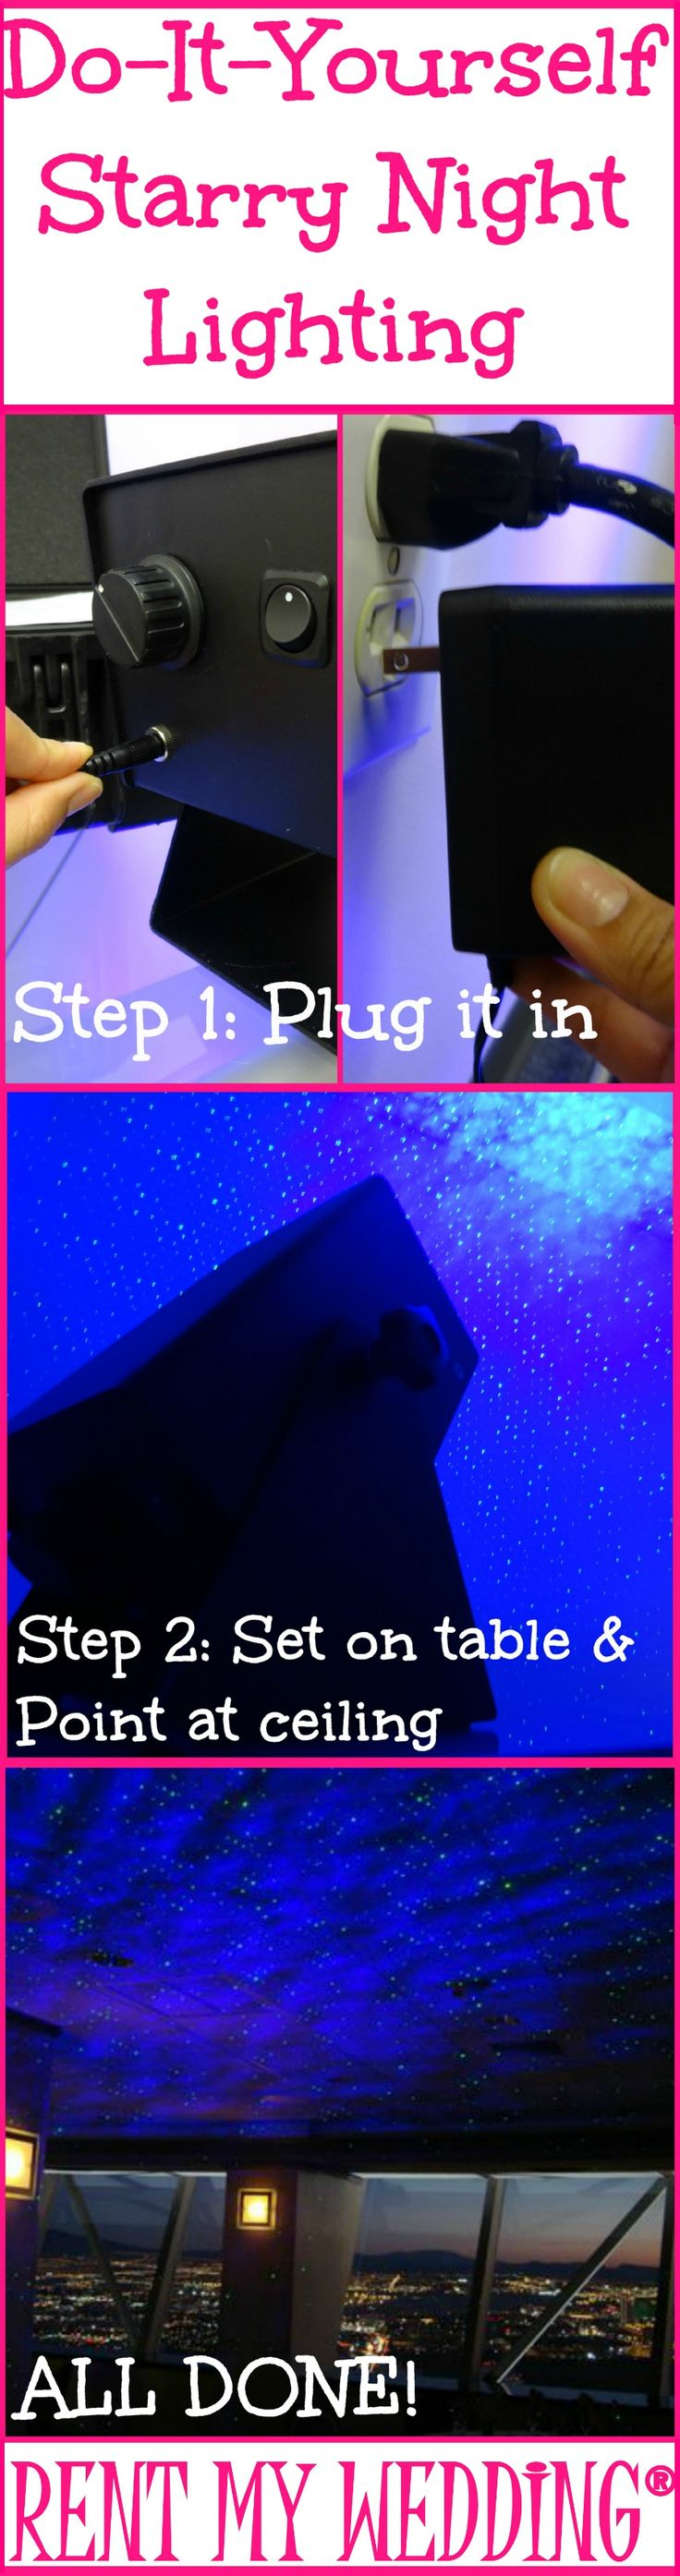 #wedding #mybigday Galaxy lighting over the dance  floor. to dance under the stars Do-It-Yourself Starry Night Lighting in 2 Easy Steps! Just plug it in & point at the ceiling. Get the look for just $149 + FREE shipping nationwide at www.RentMyWedding.com